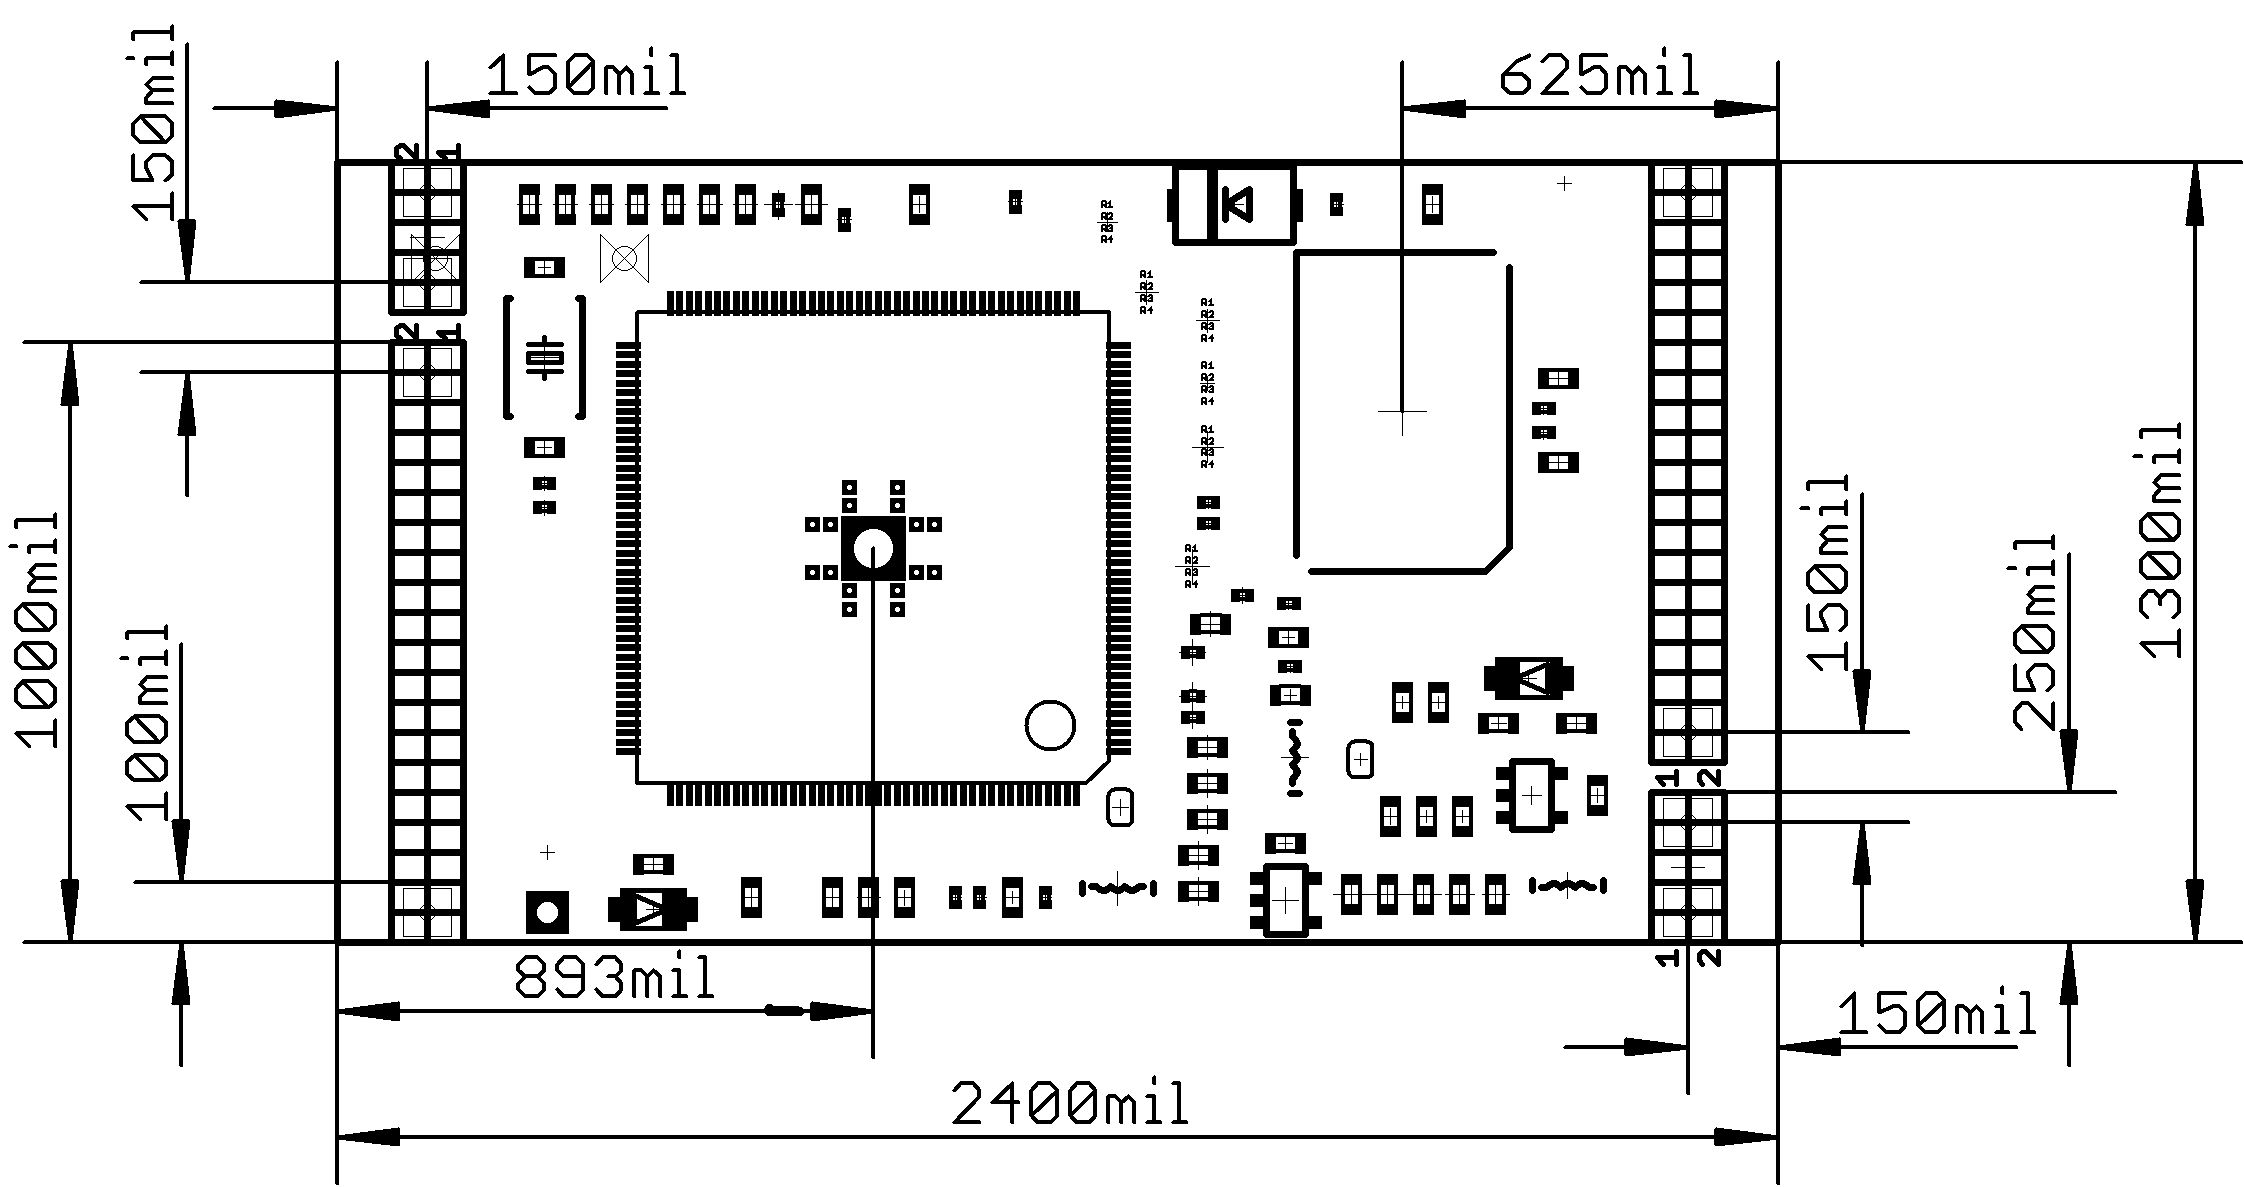 A13 Som 512 Schematic Available In Pdf And Eagle Formats The Format Board Dimensions